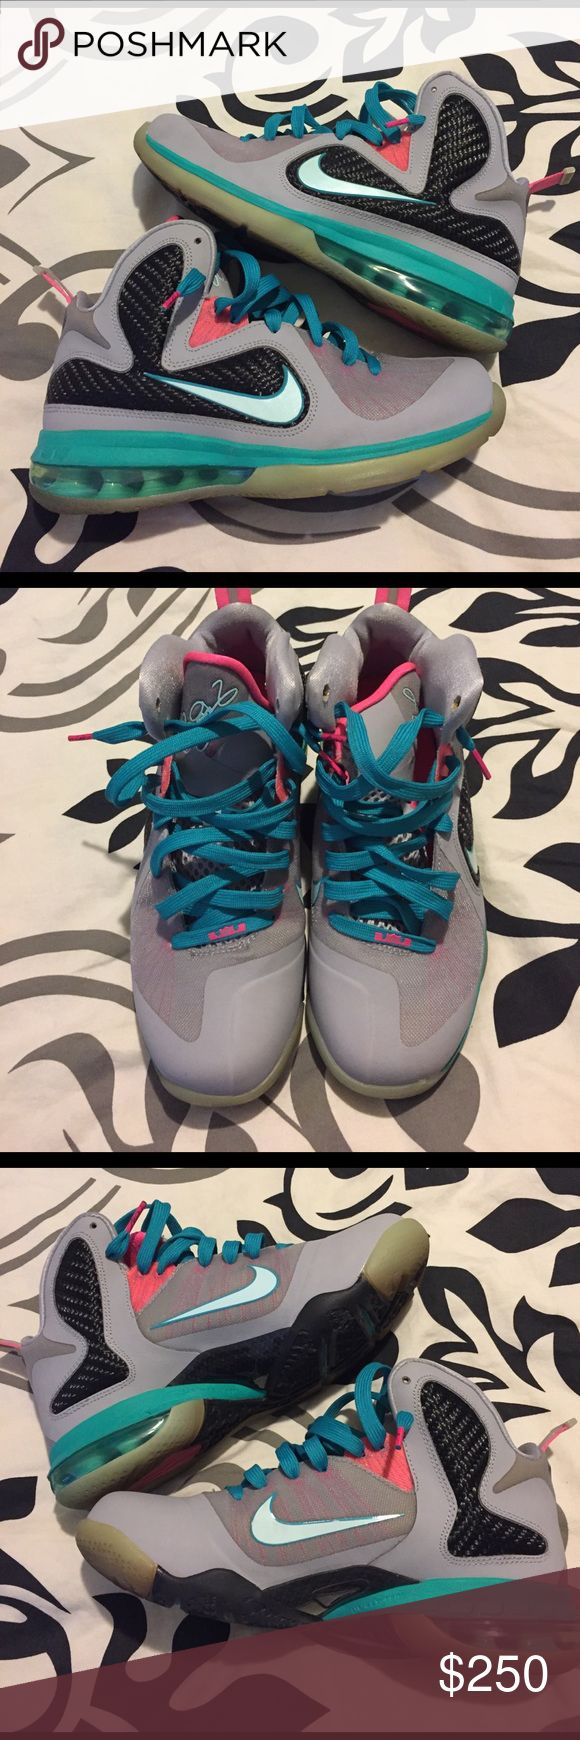 Nike LeBron South Beaches Nike LeBron South Beaches ☀️ Great condition. Nike Shoes Sneakers